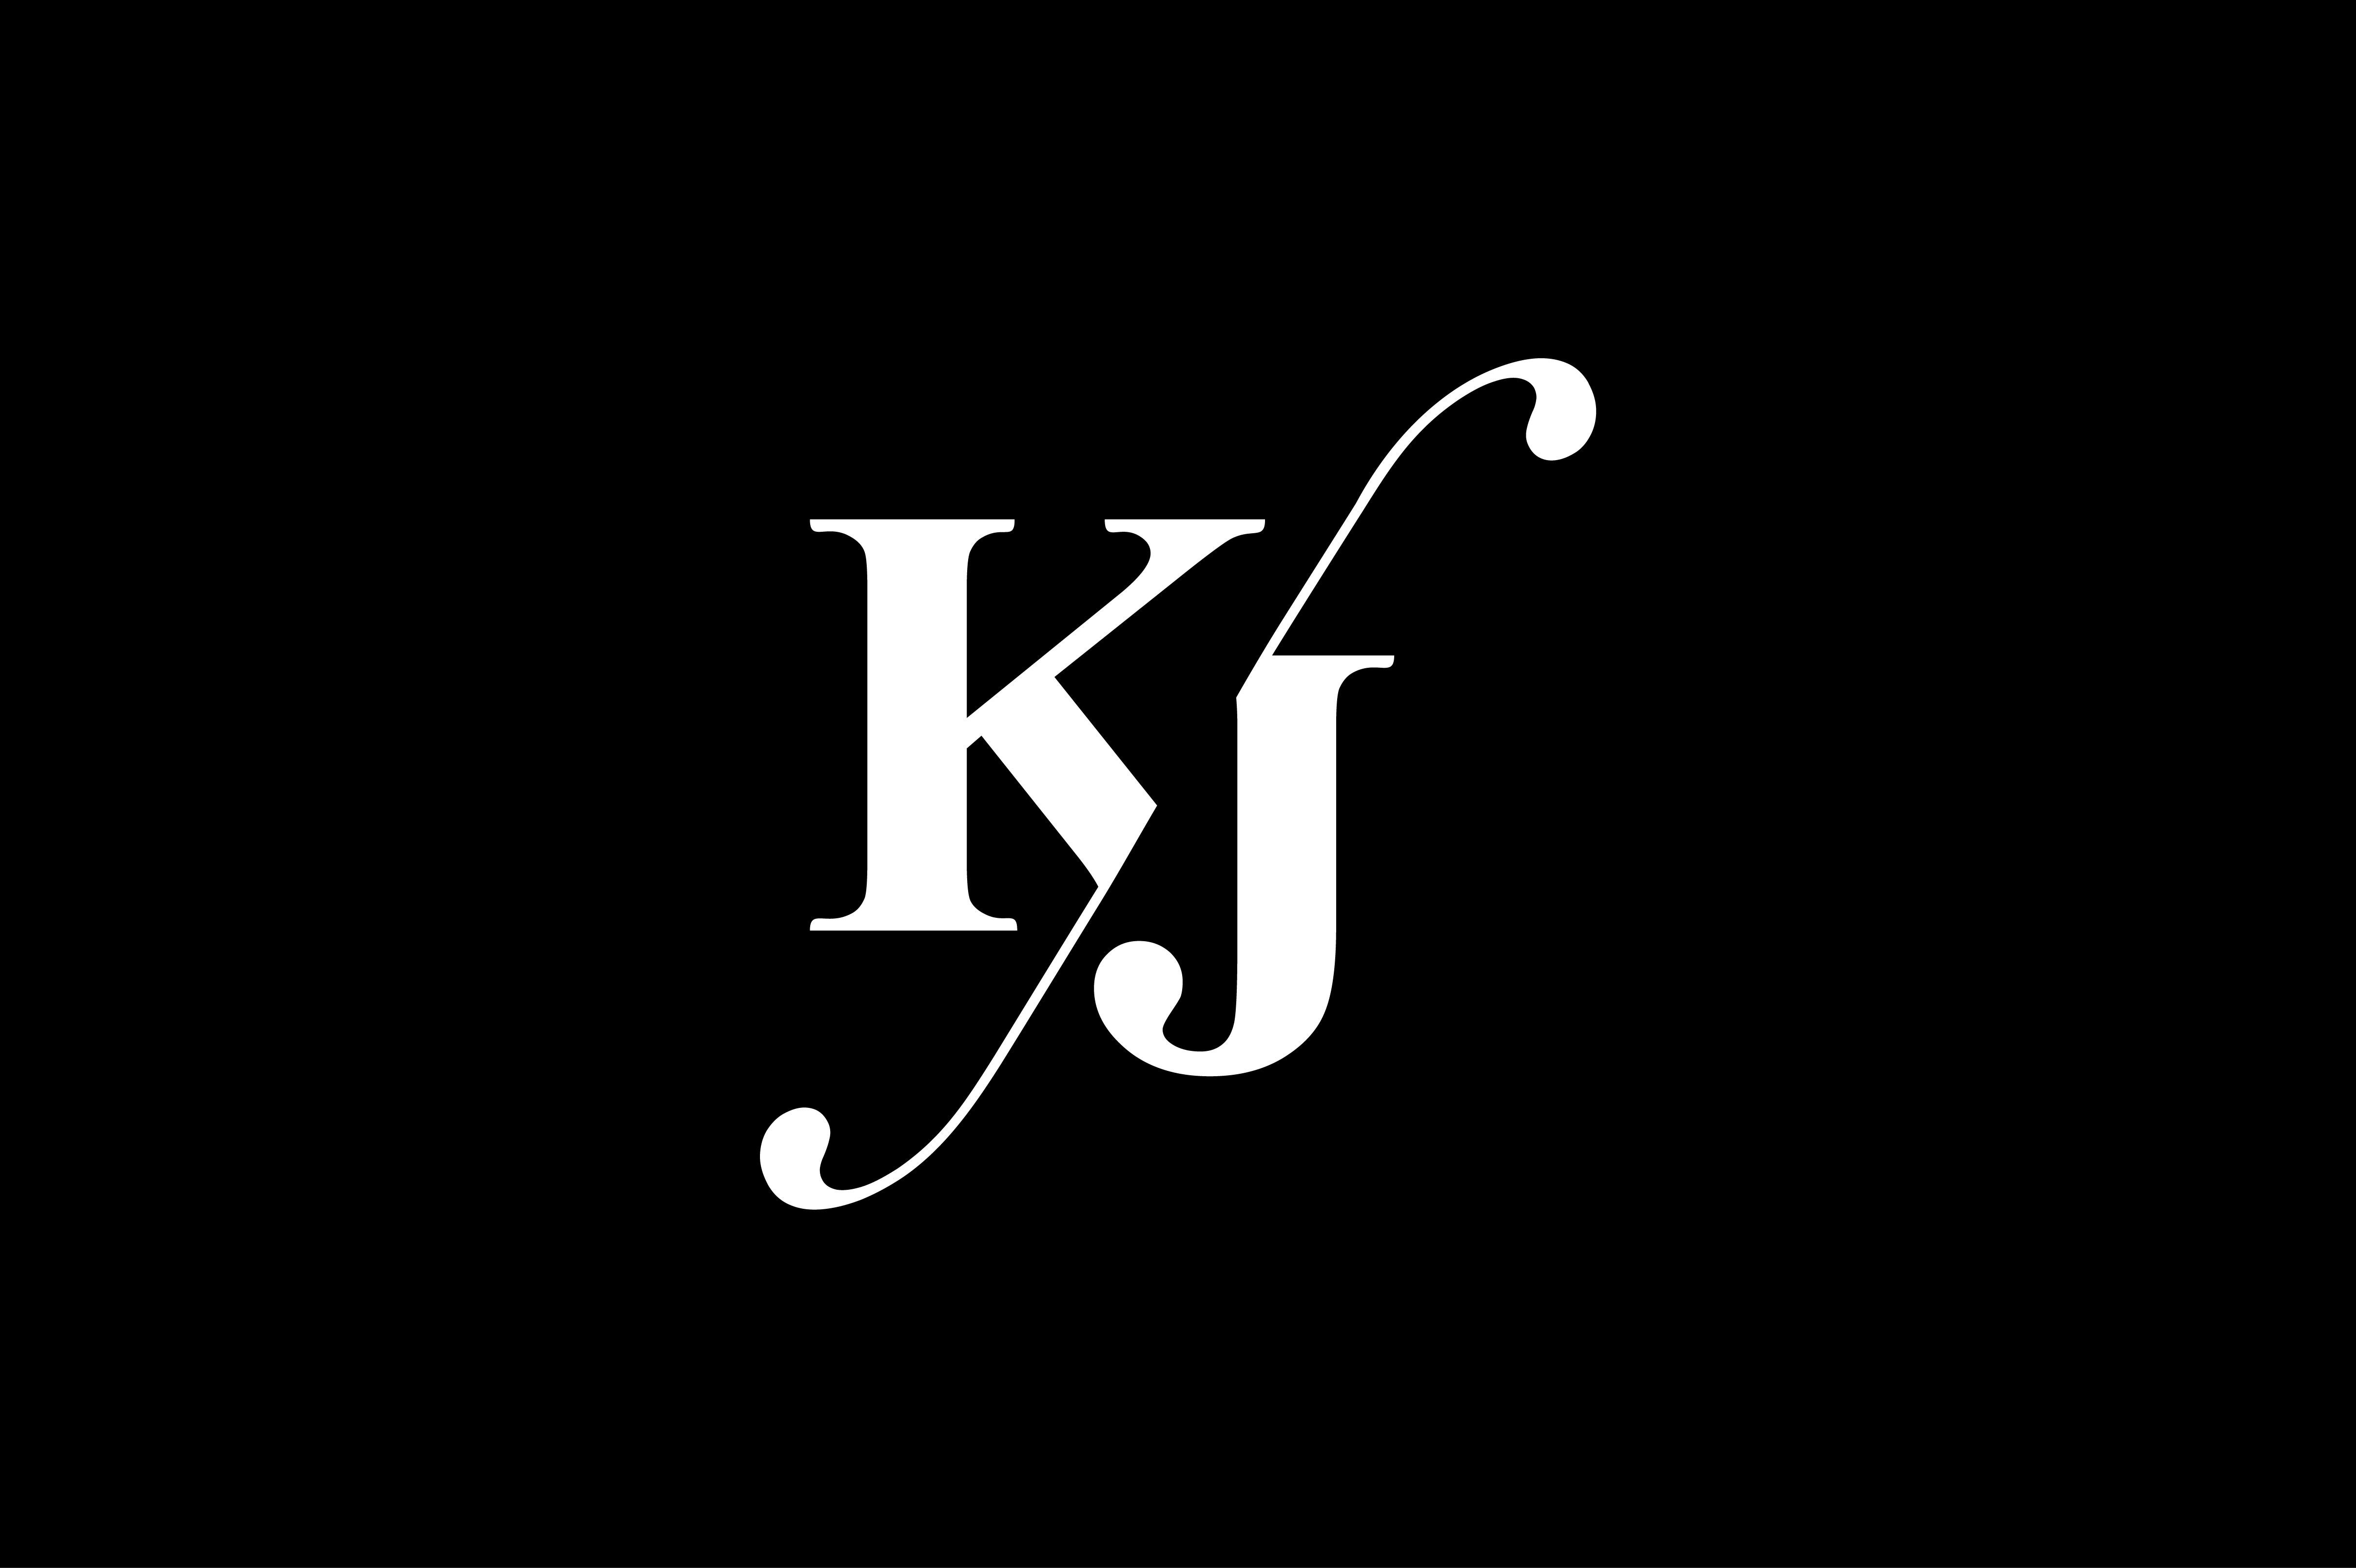 Kj Monogram Logo Design By Vectorseller Thehungryjpeg Com